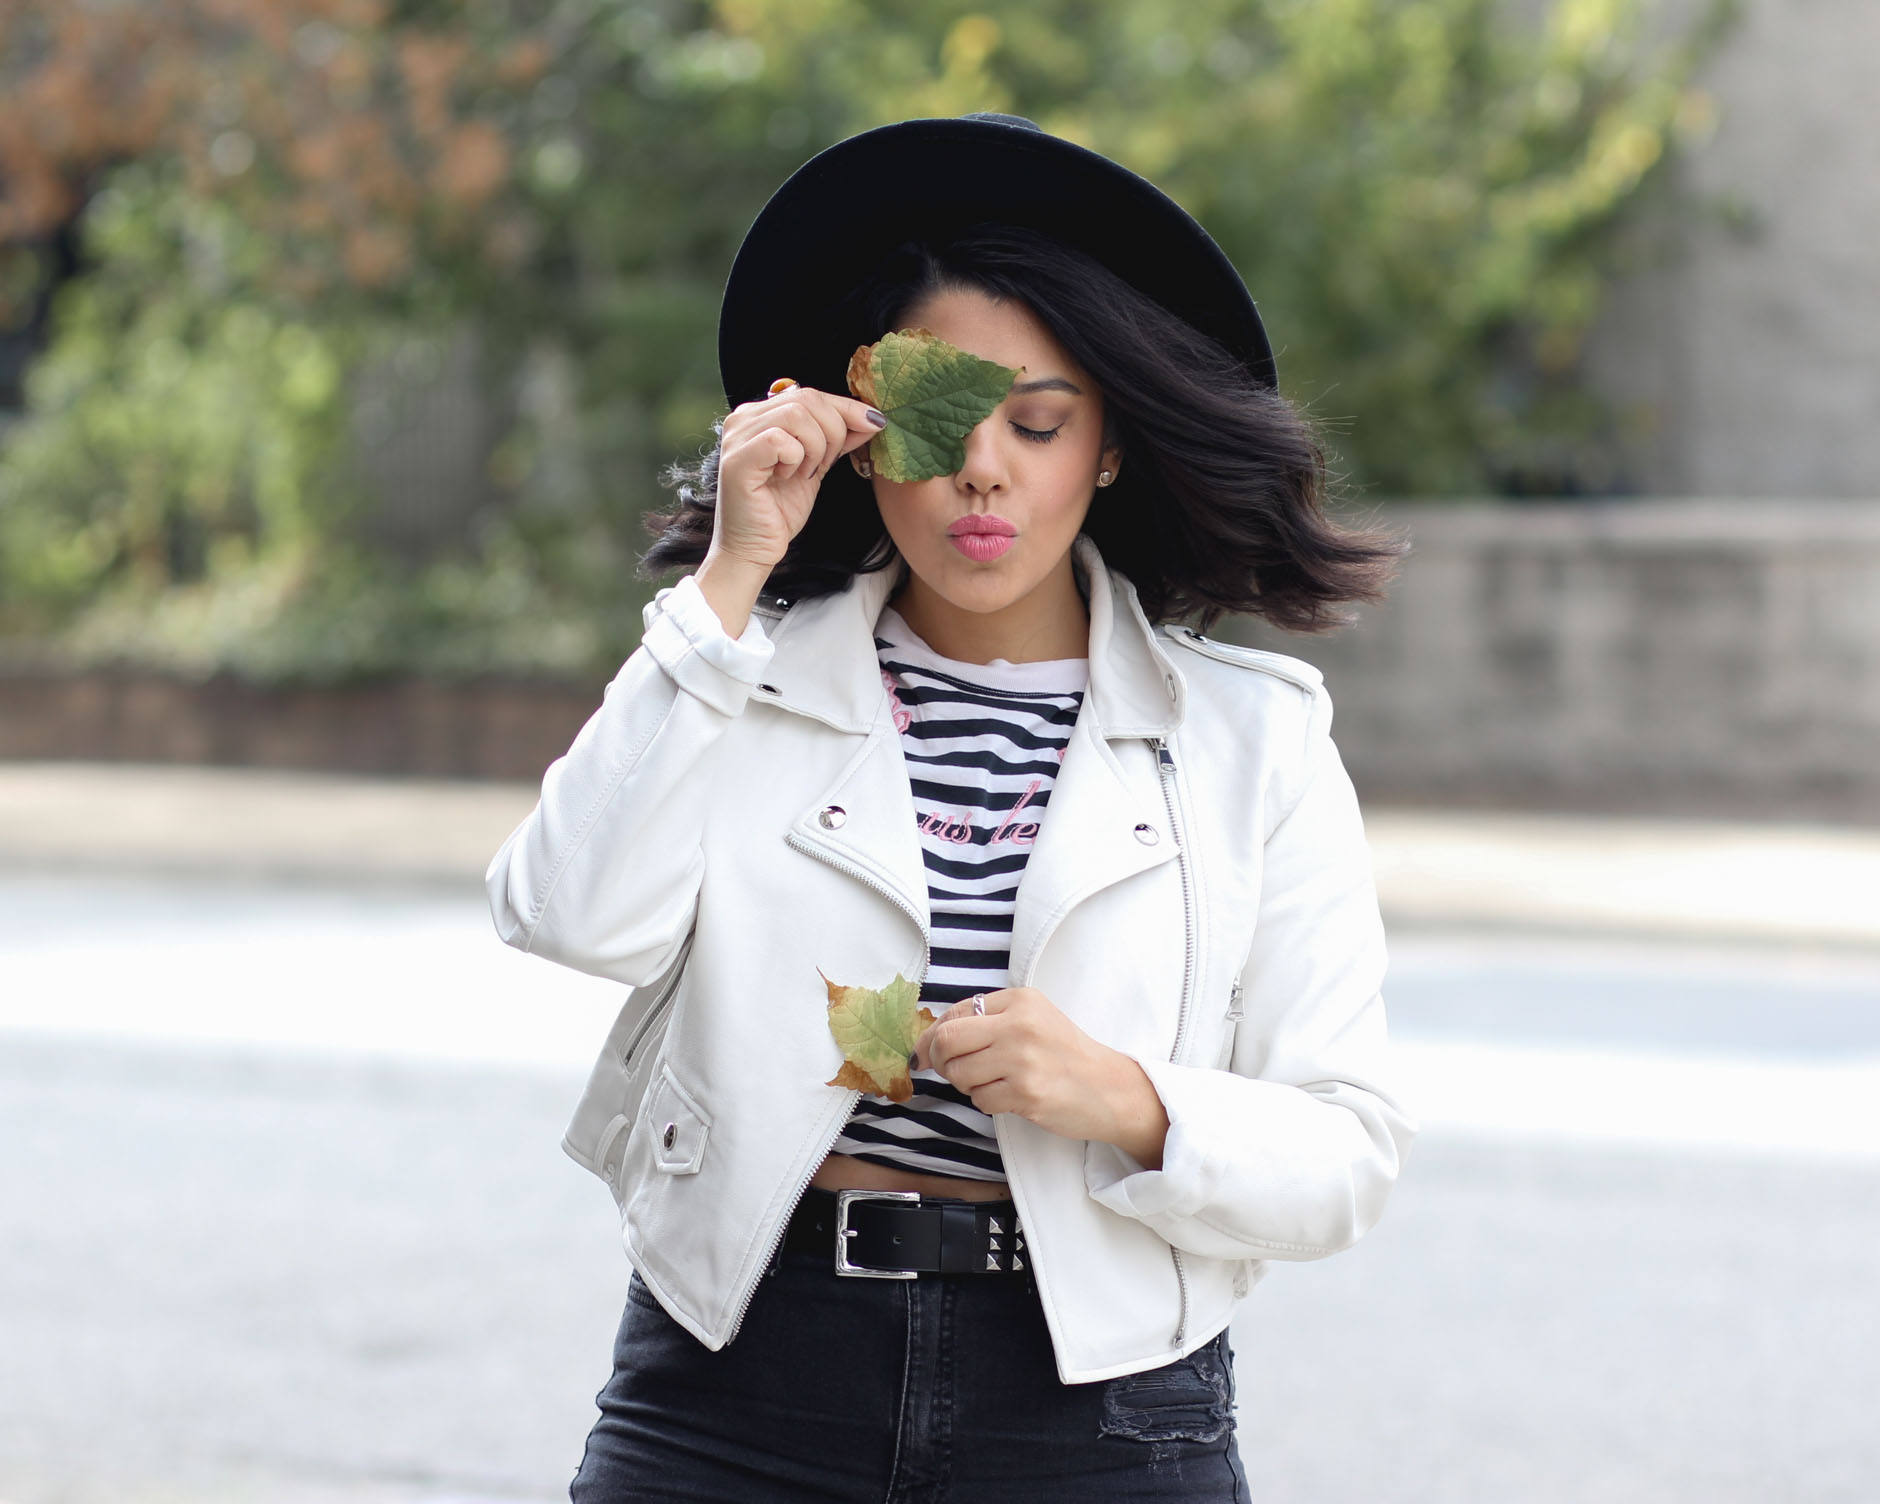 lifestyle blogger naty michele wearing a faux leather jacket and holding up a leaf